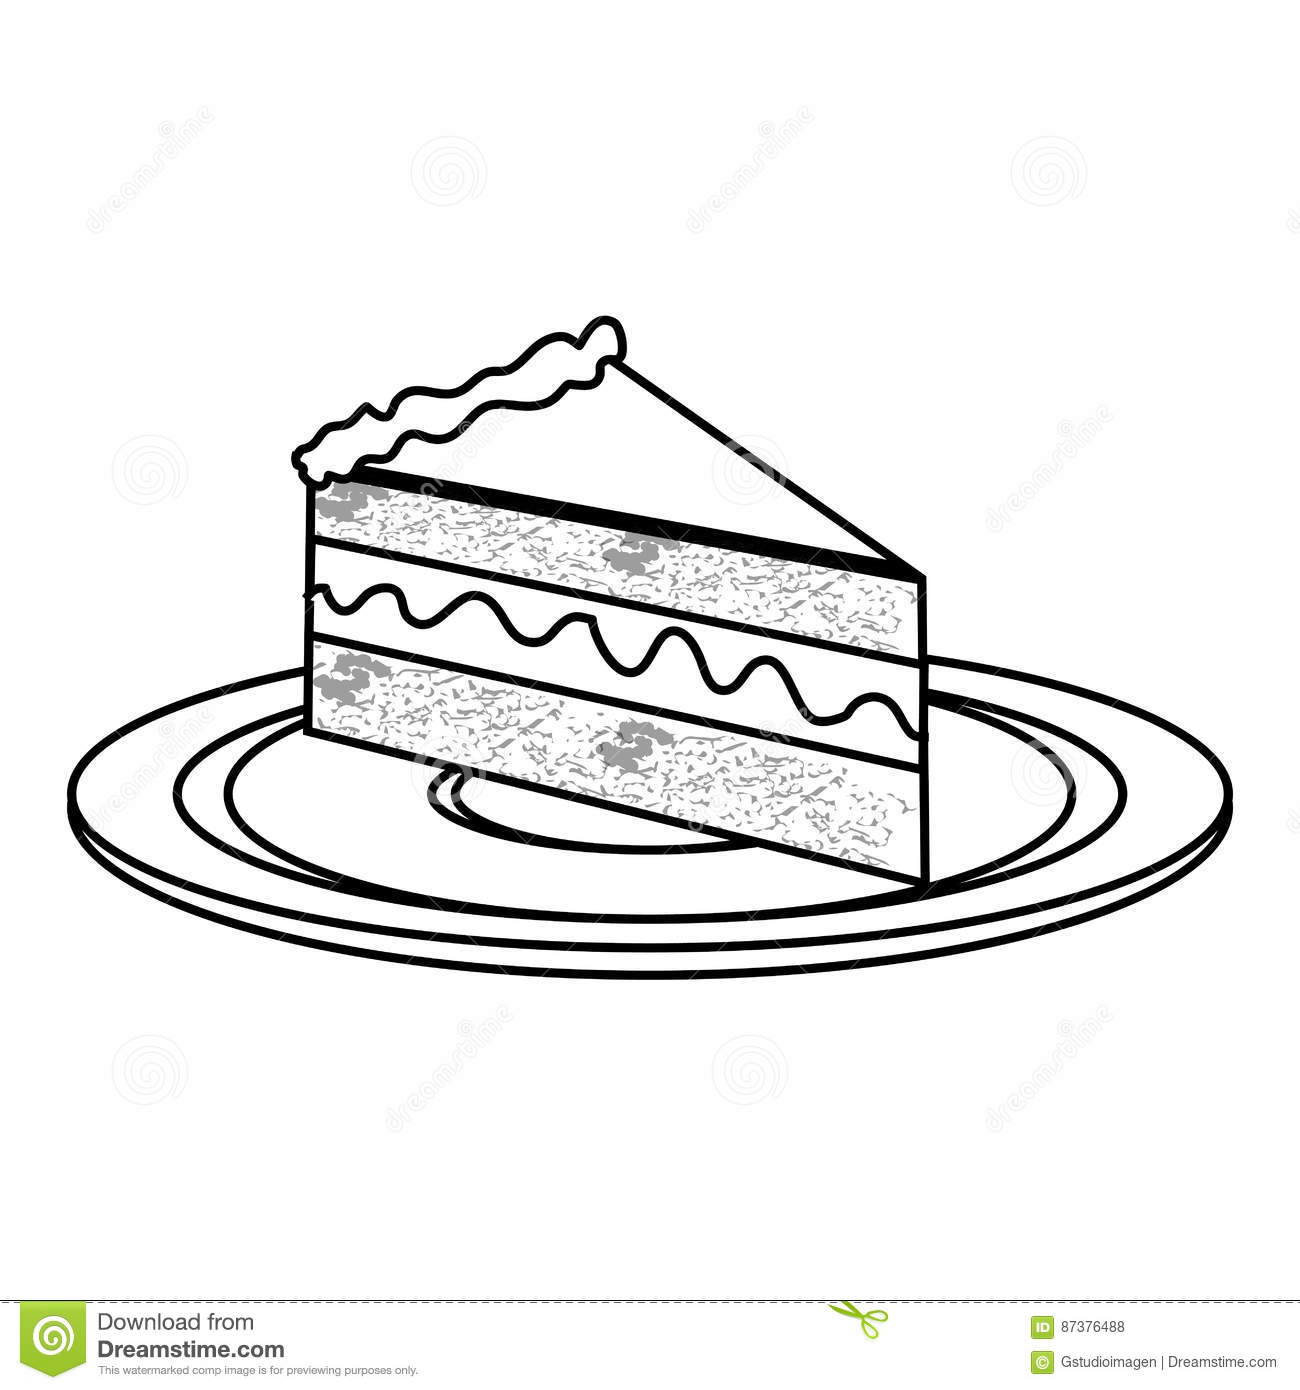 Silhouette Dish With Piece Of Cake With Cream Stock Vector